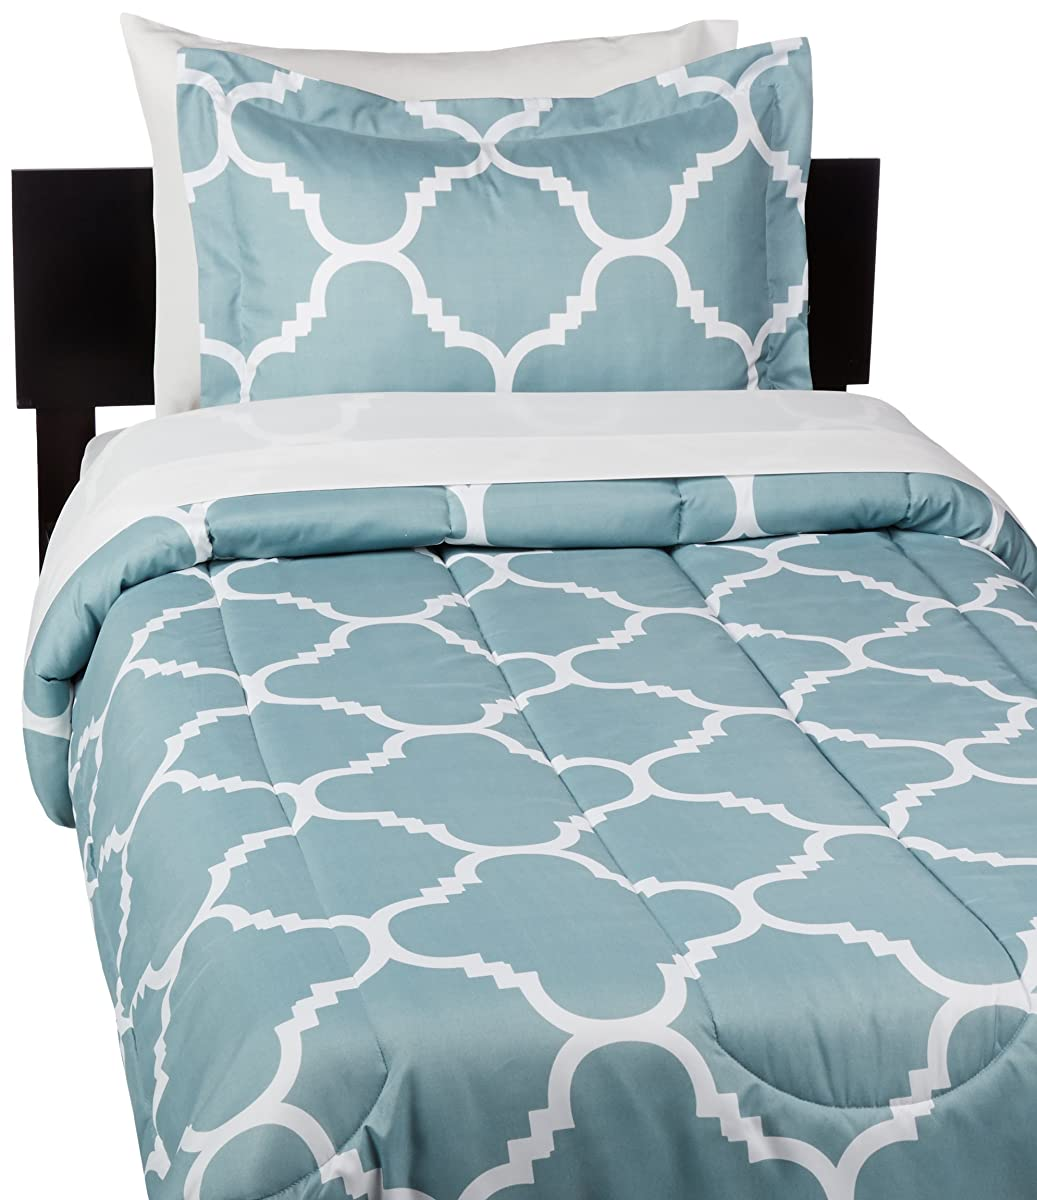 AmazonBasics 5-Piece Bed-In-A-Bag - Twin/Twin Extra-Long, Dusty Blue Trellis